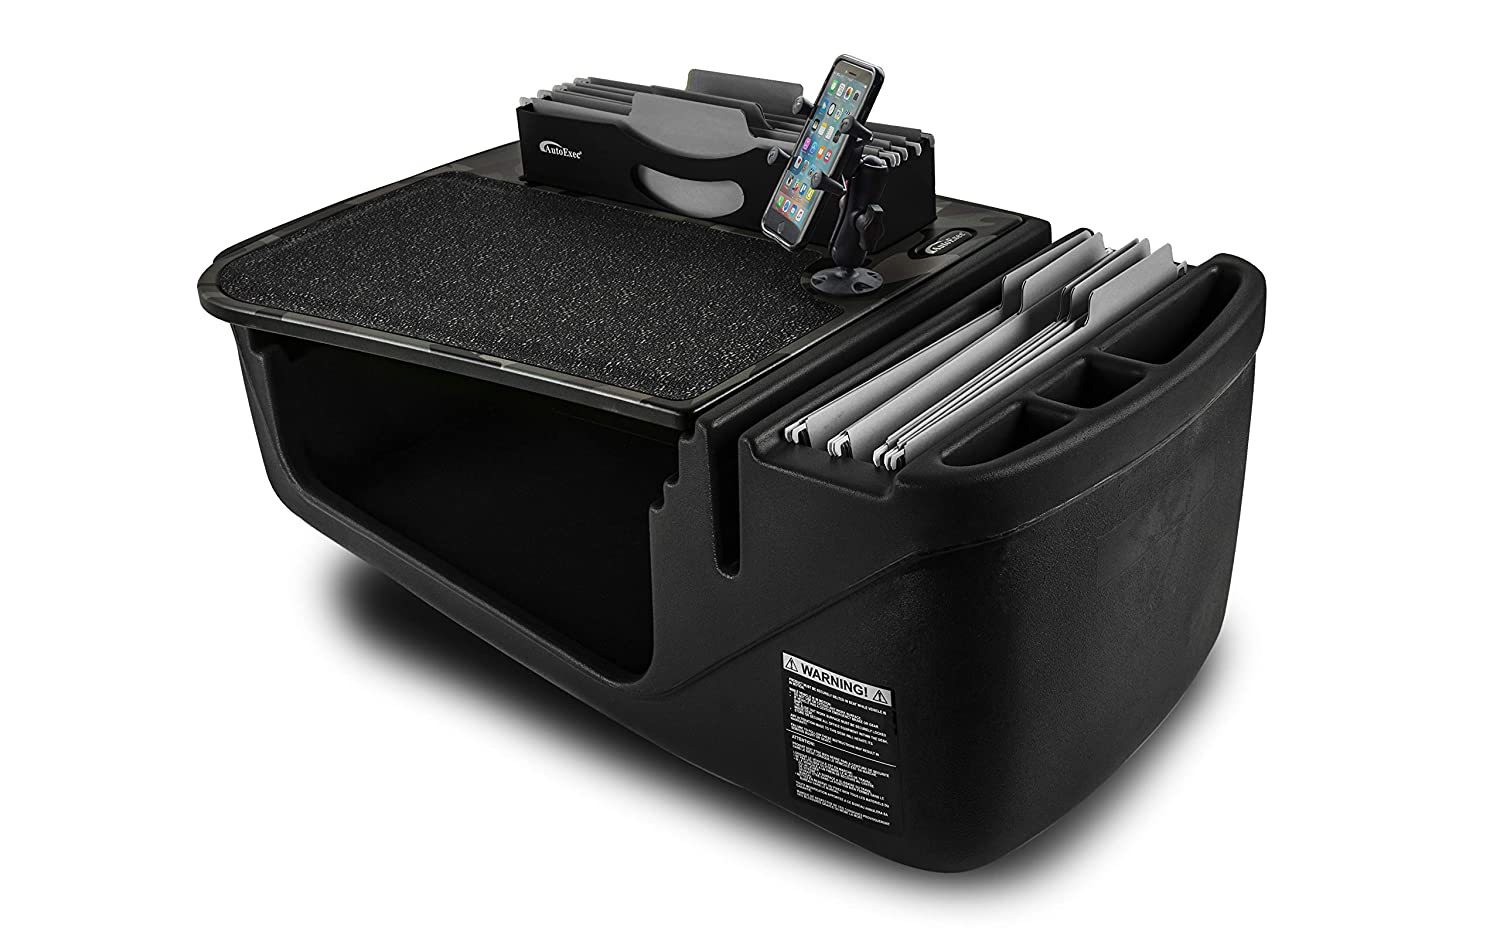 AutoExec AUE28508 FileMaster Built-in Power Inverter and Printer Stand Car Desk AESFile-02 PS GC